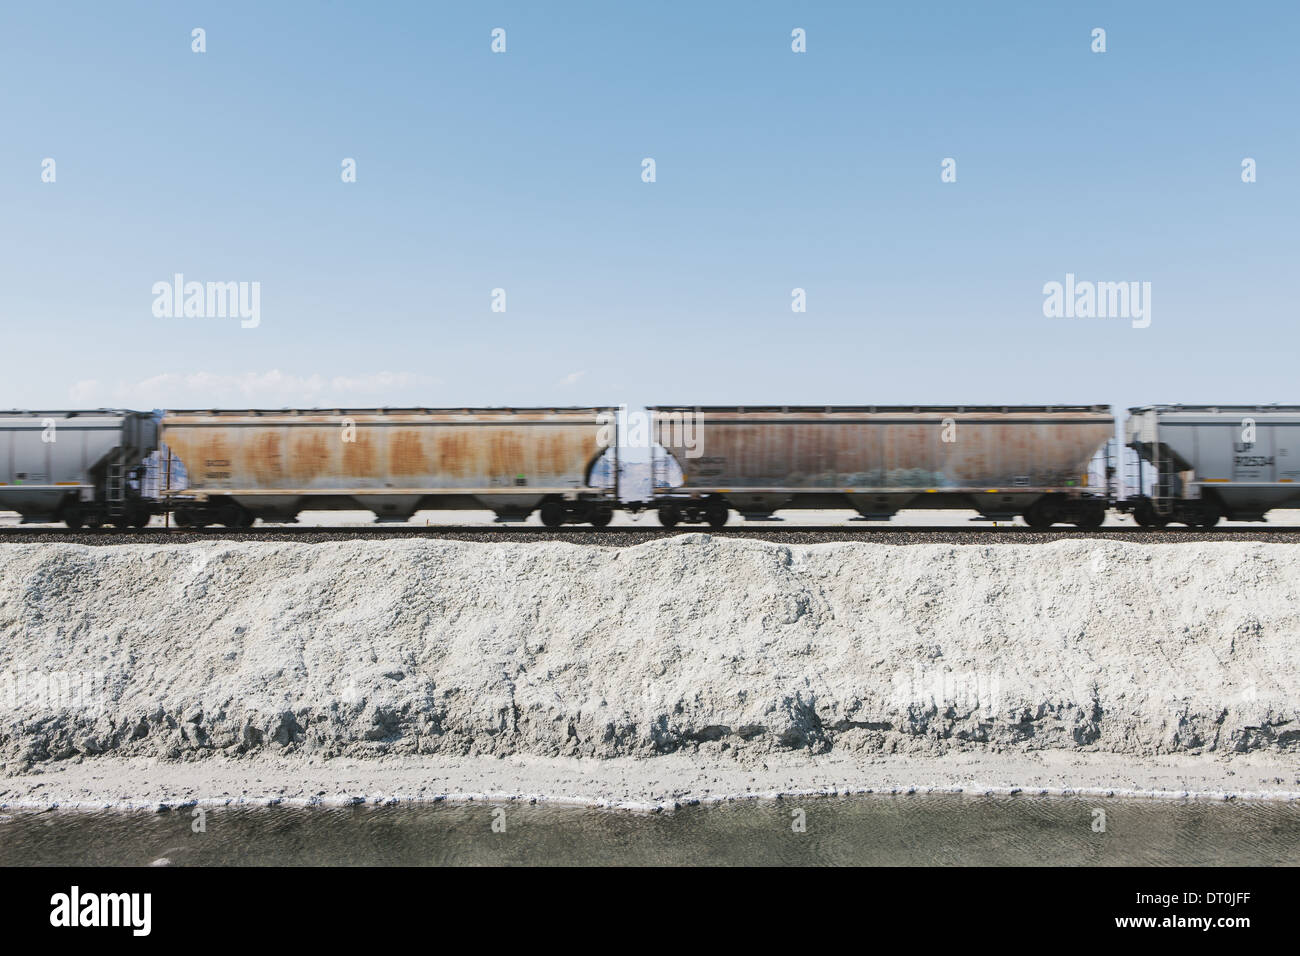 Bonneville Salt Flats Utah USA goods train in the desert on railway tracks Stock Photo